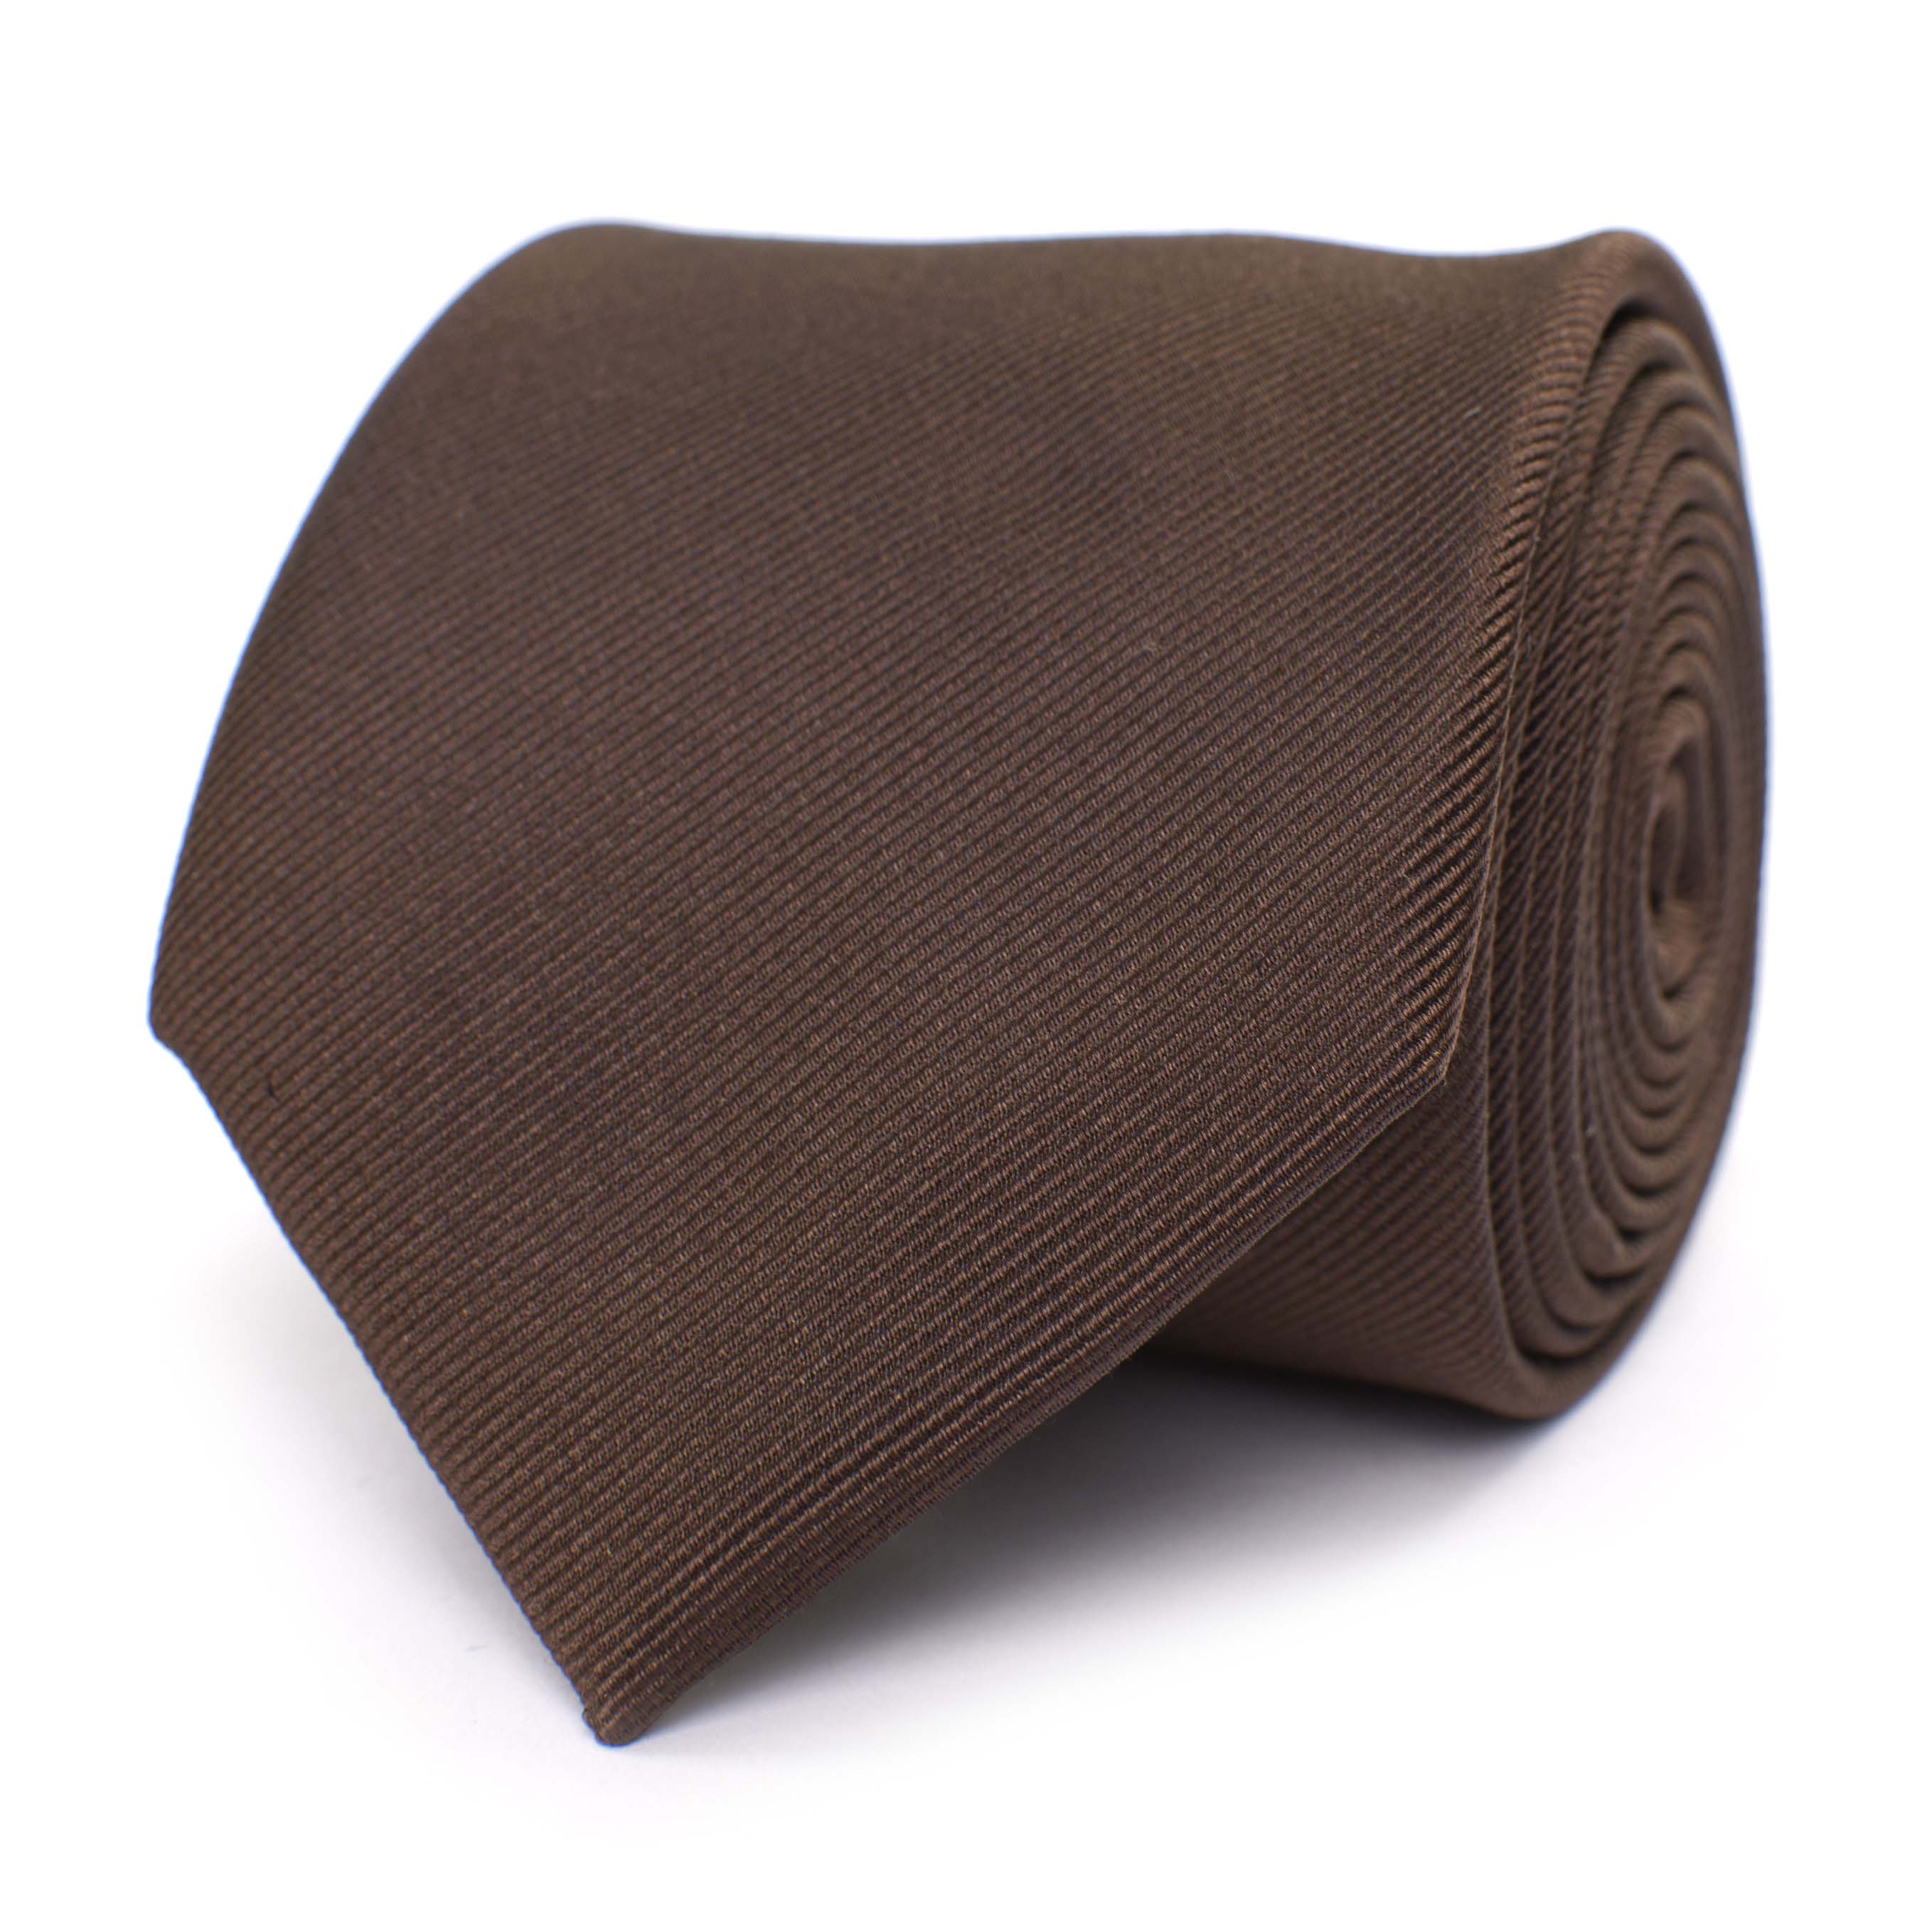 Tie classic ribbed brown